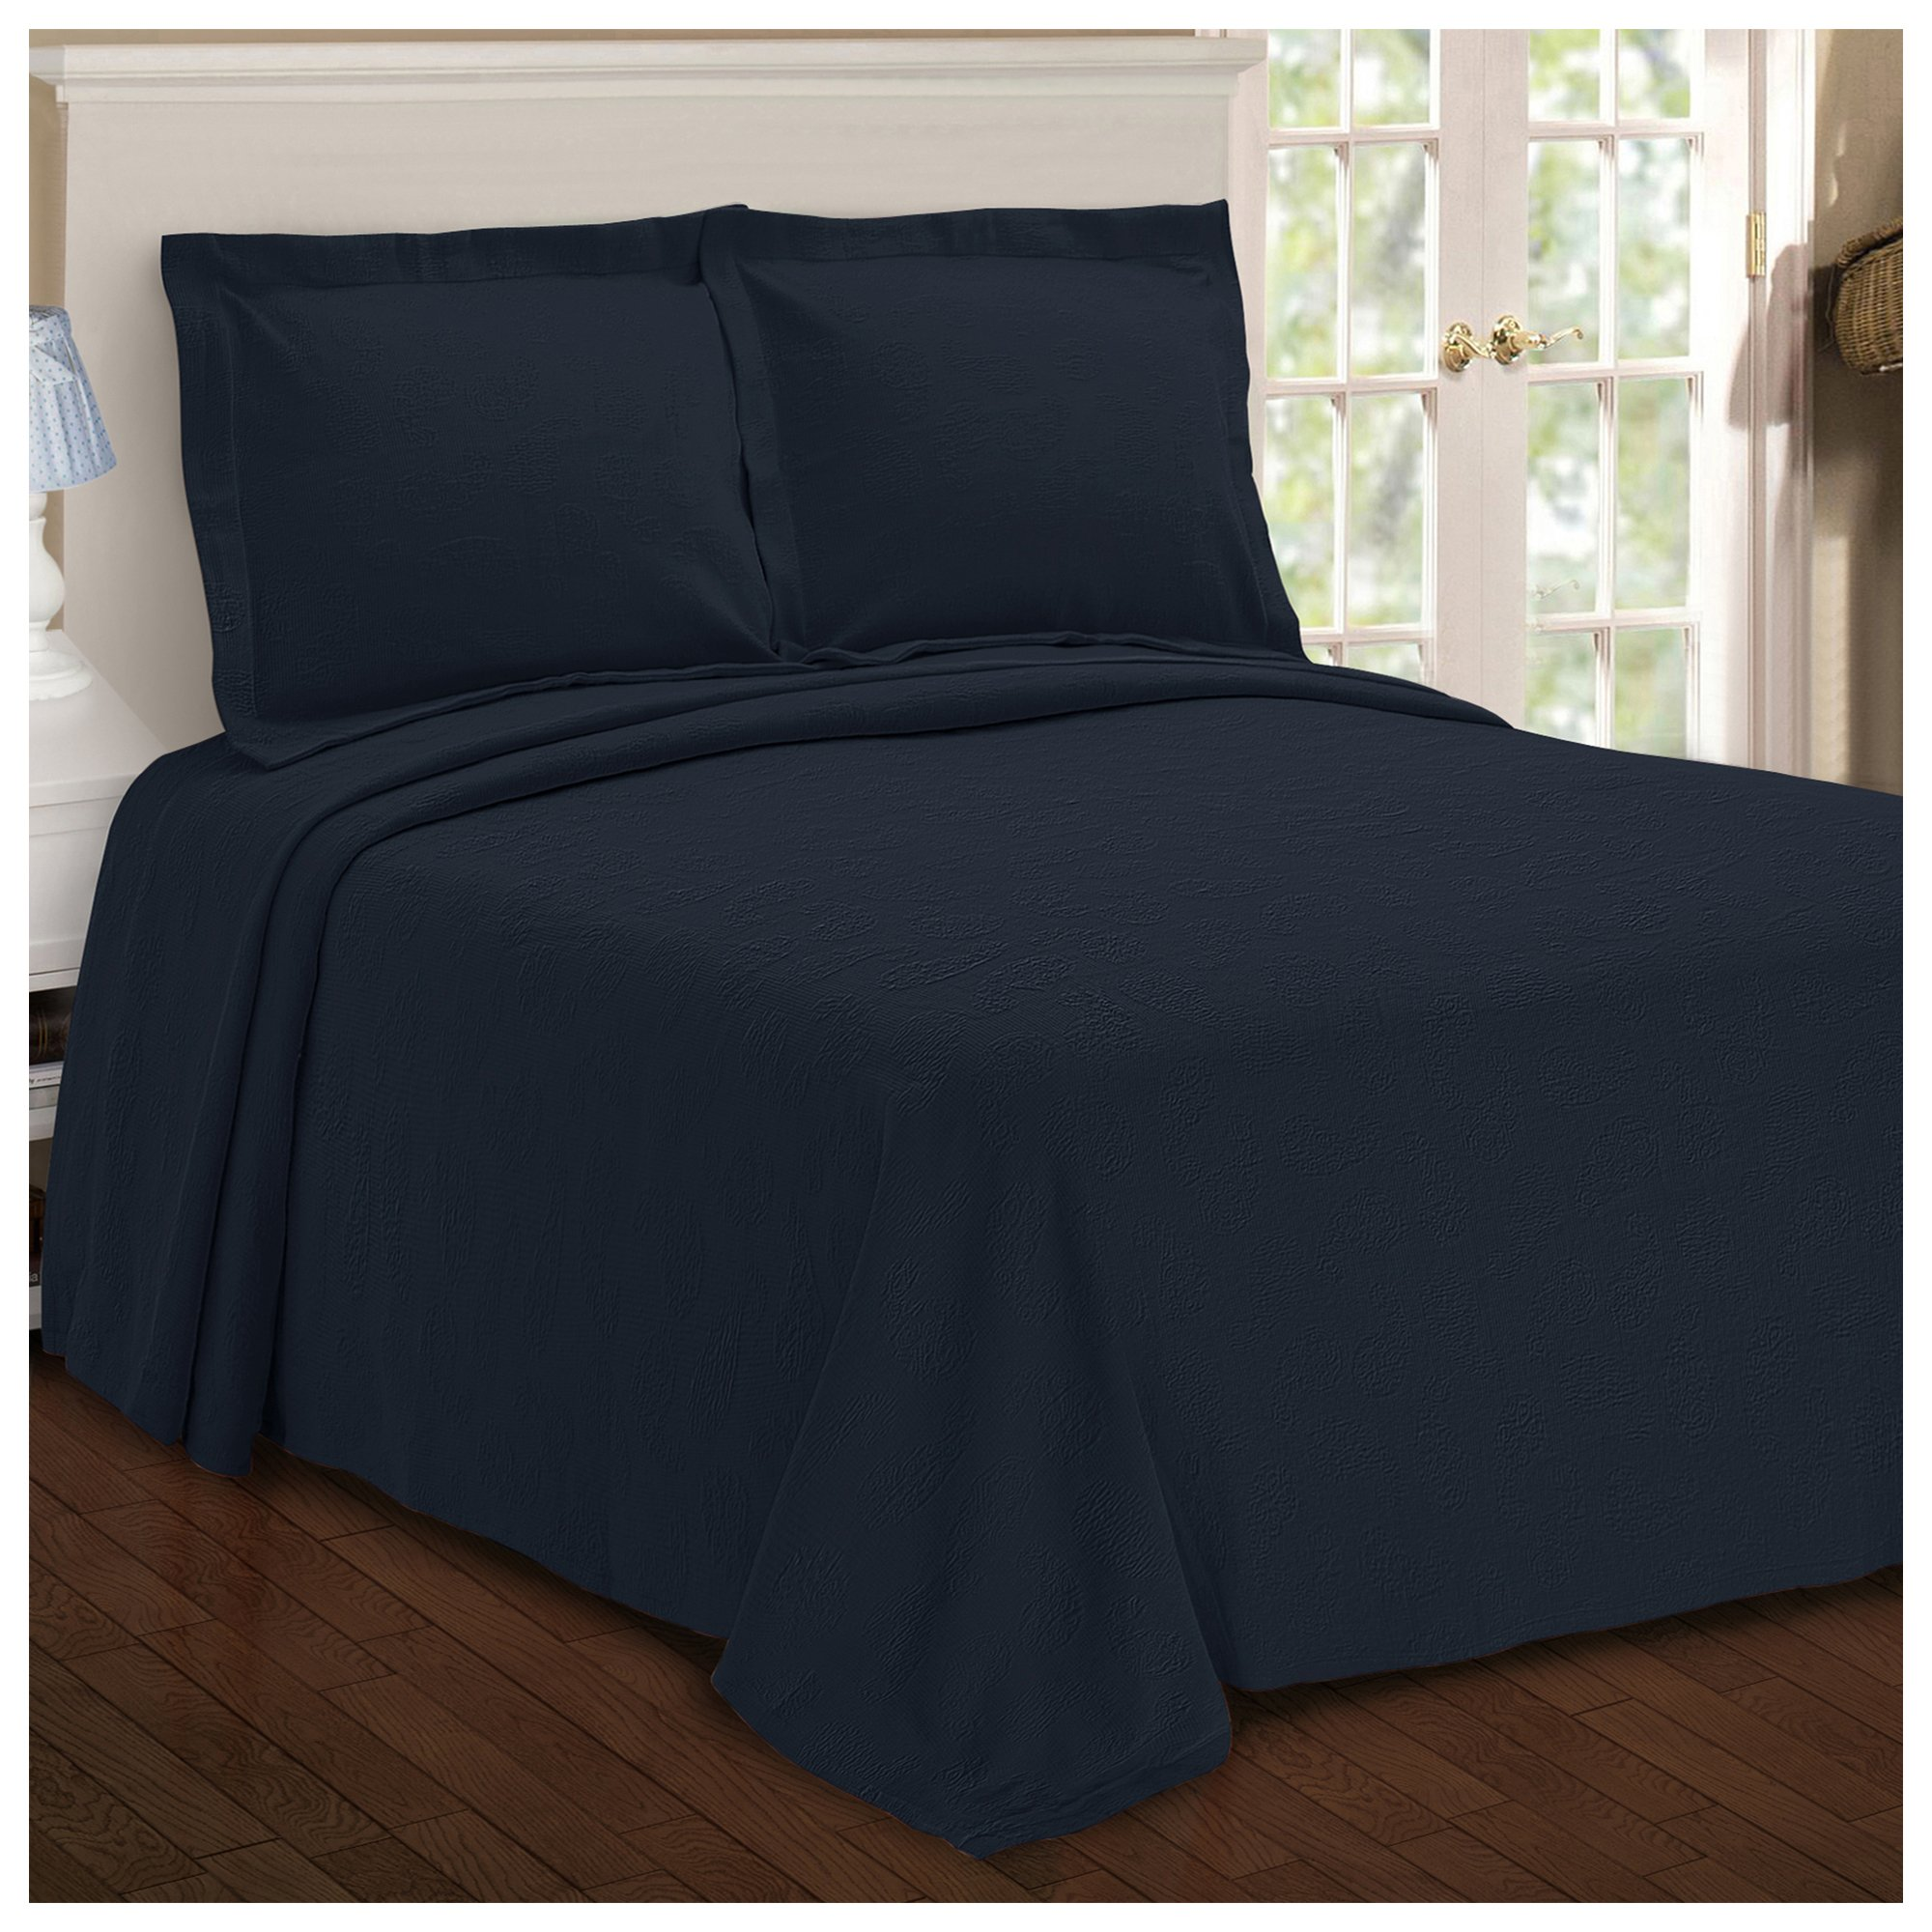 Superior Paisley Jacquard Matelassé 100% Premium Cotton Bedspread with Matching Shams, Queen, Navy Blue by Superior